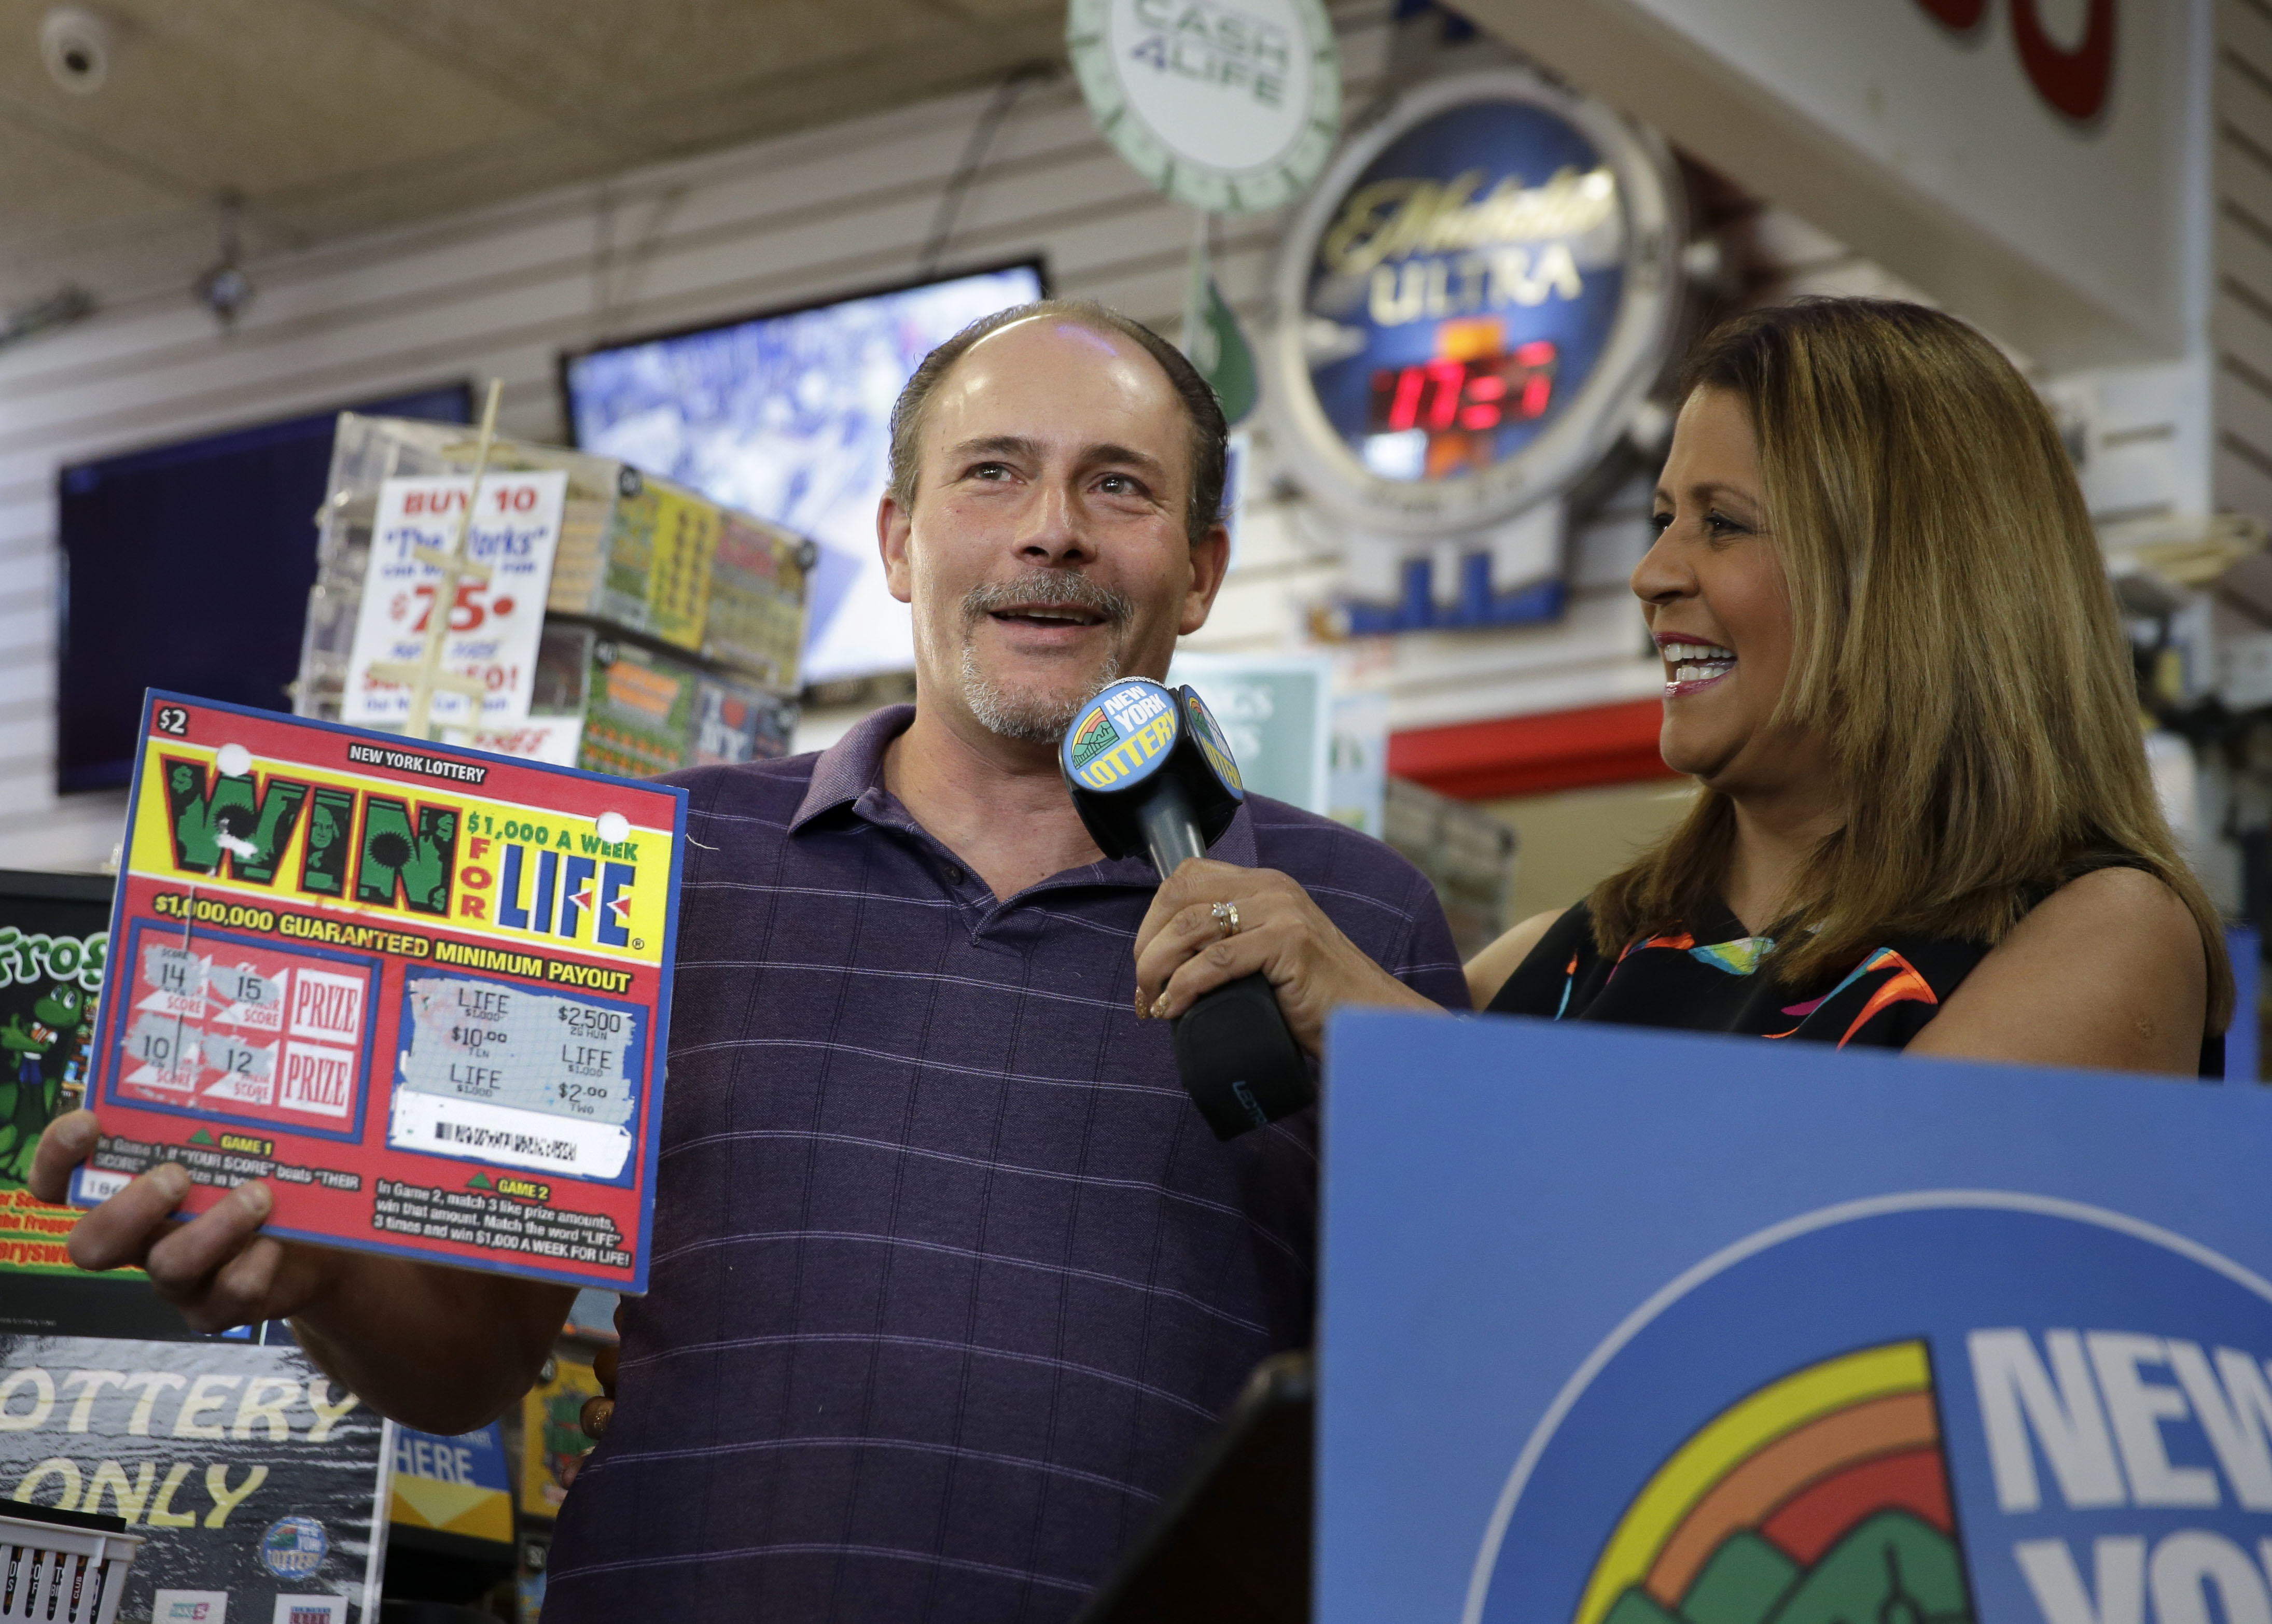 New York man wins $1M lottery twice at same gas station